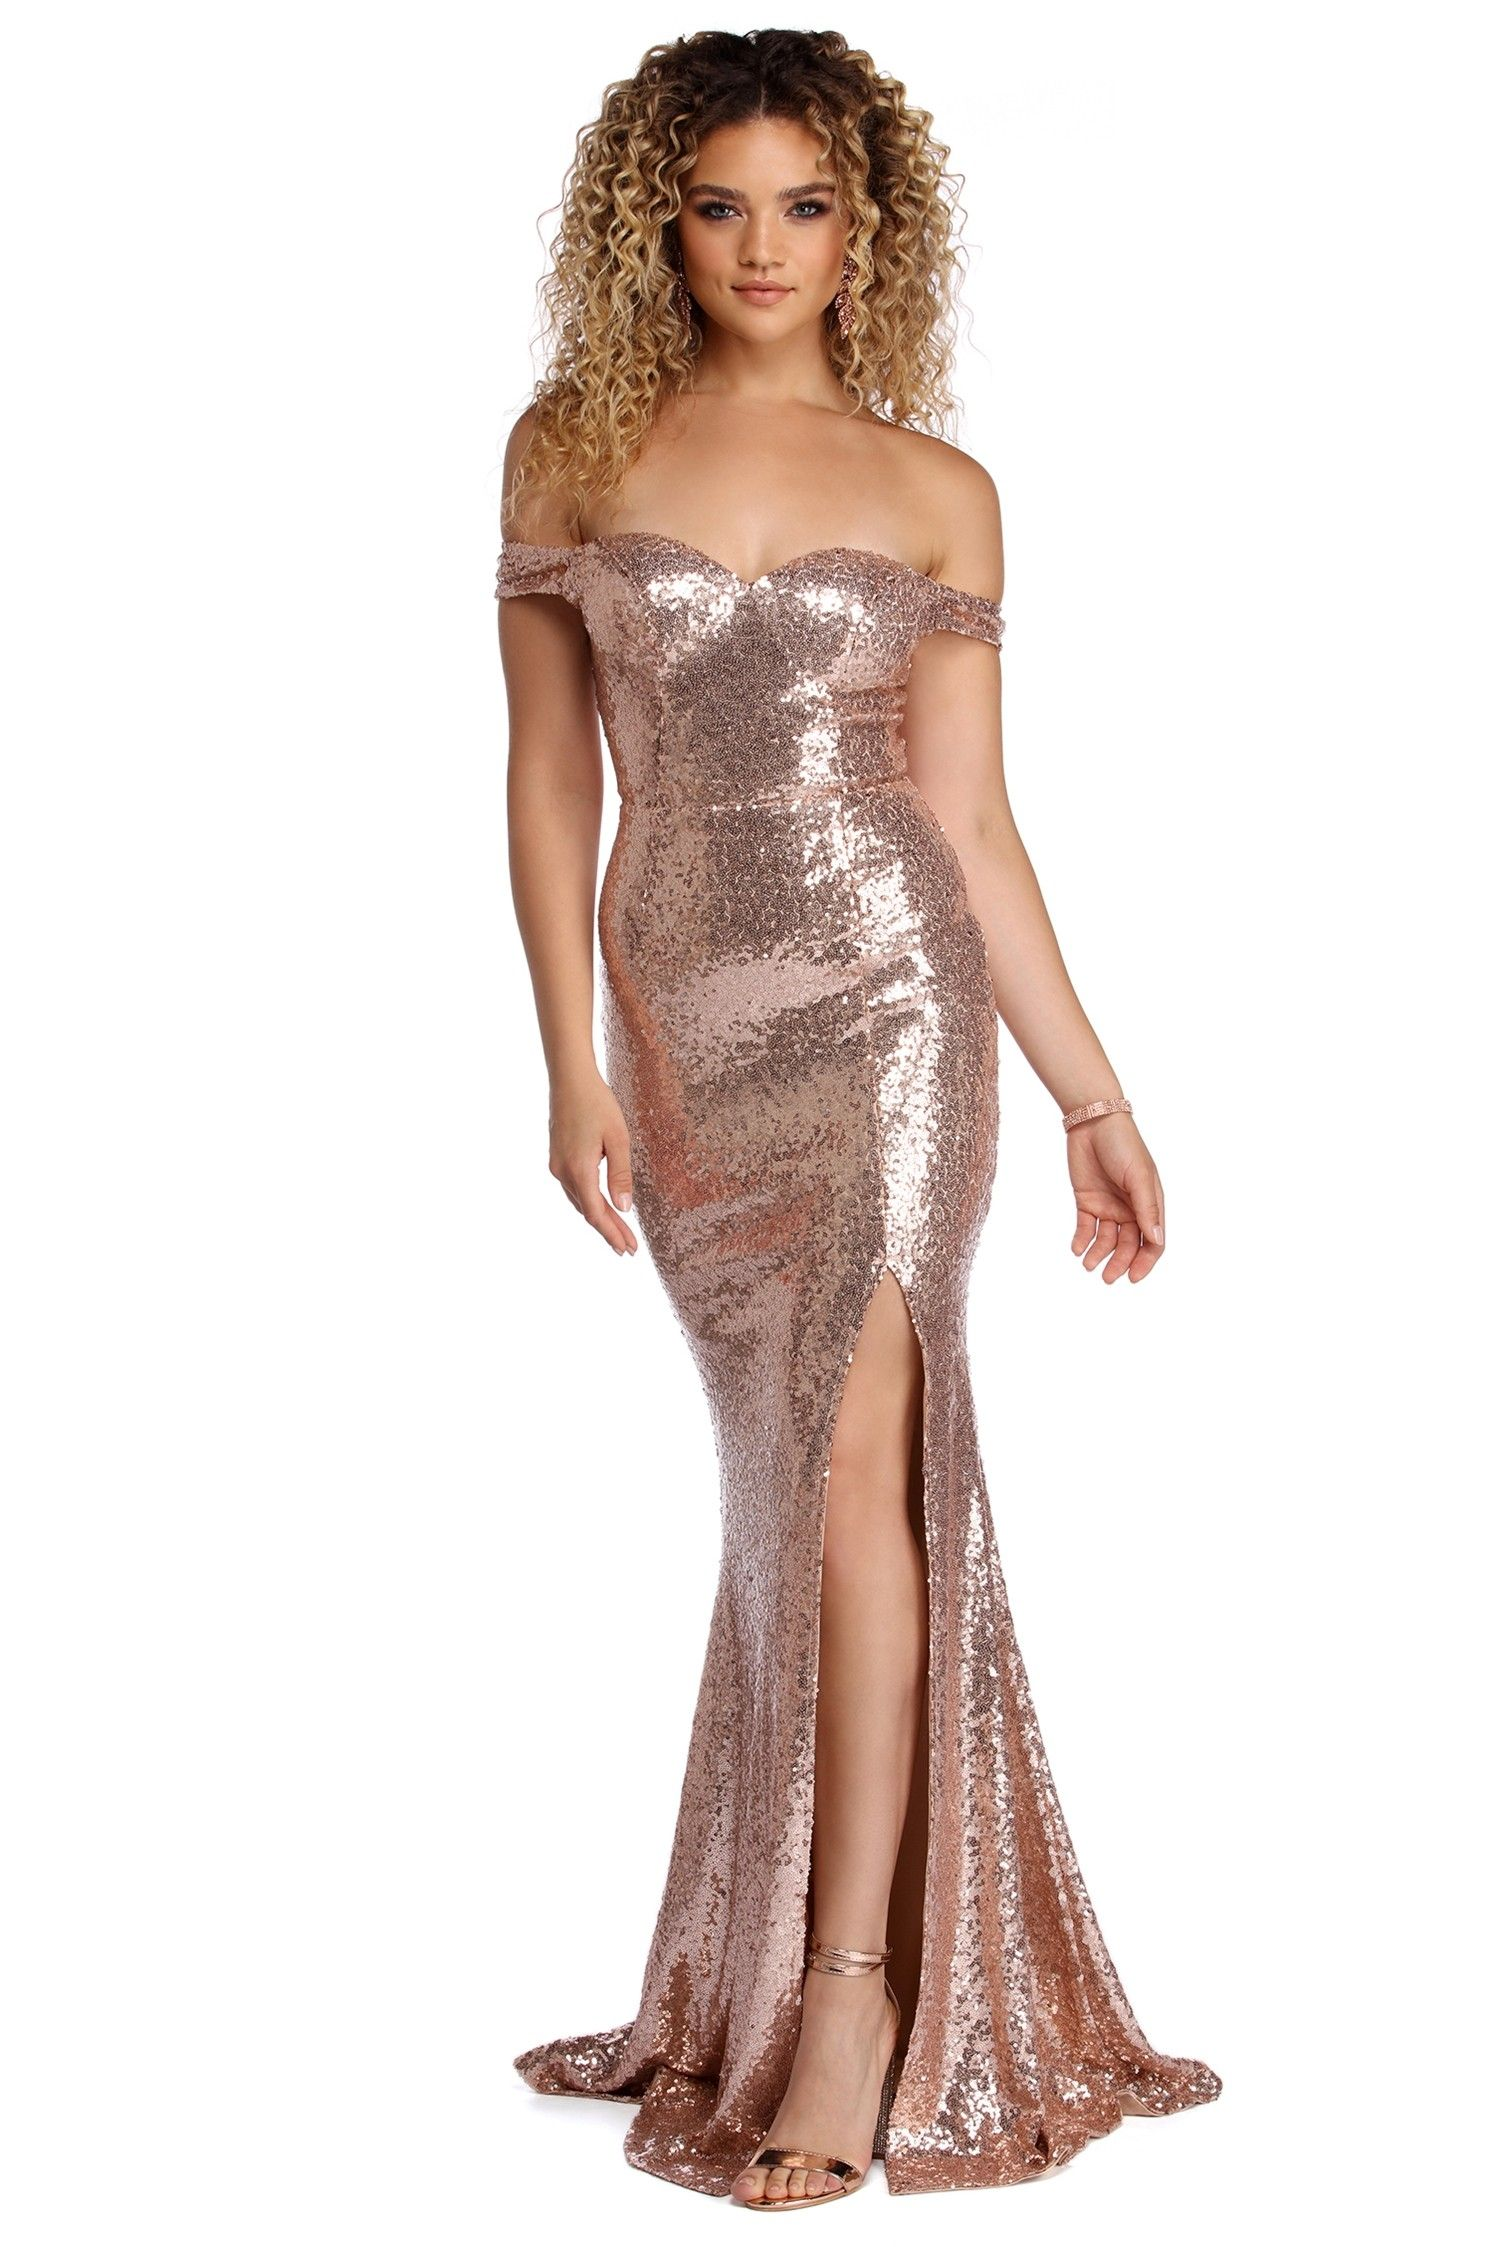 e41dae0efe6d Ariana Formal Sequin Sweetheart Dress #worldofstylishwoman Prom Eye Makeup,  Fashion Illustration Tutorial, Sparkle